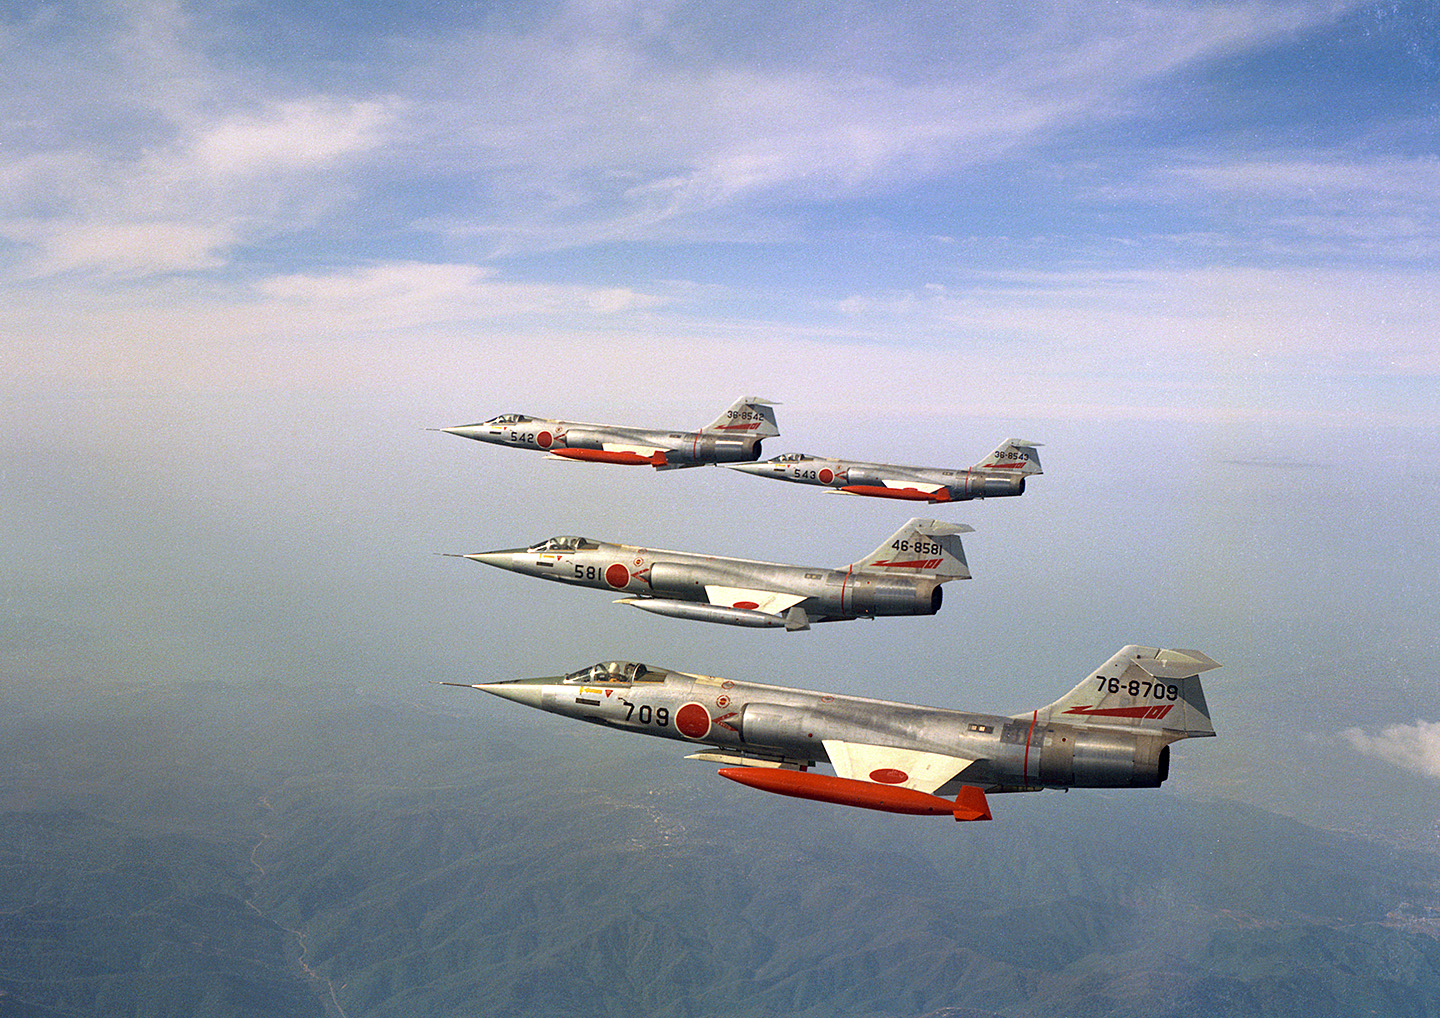 F-104Js flying over Japan. (photo via JASDF Chitose Air Base)